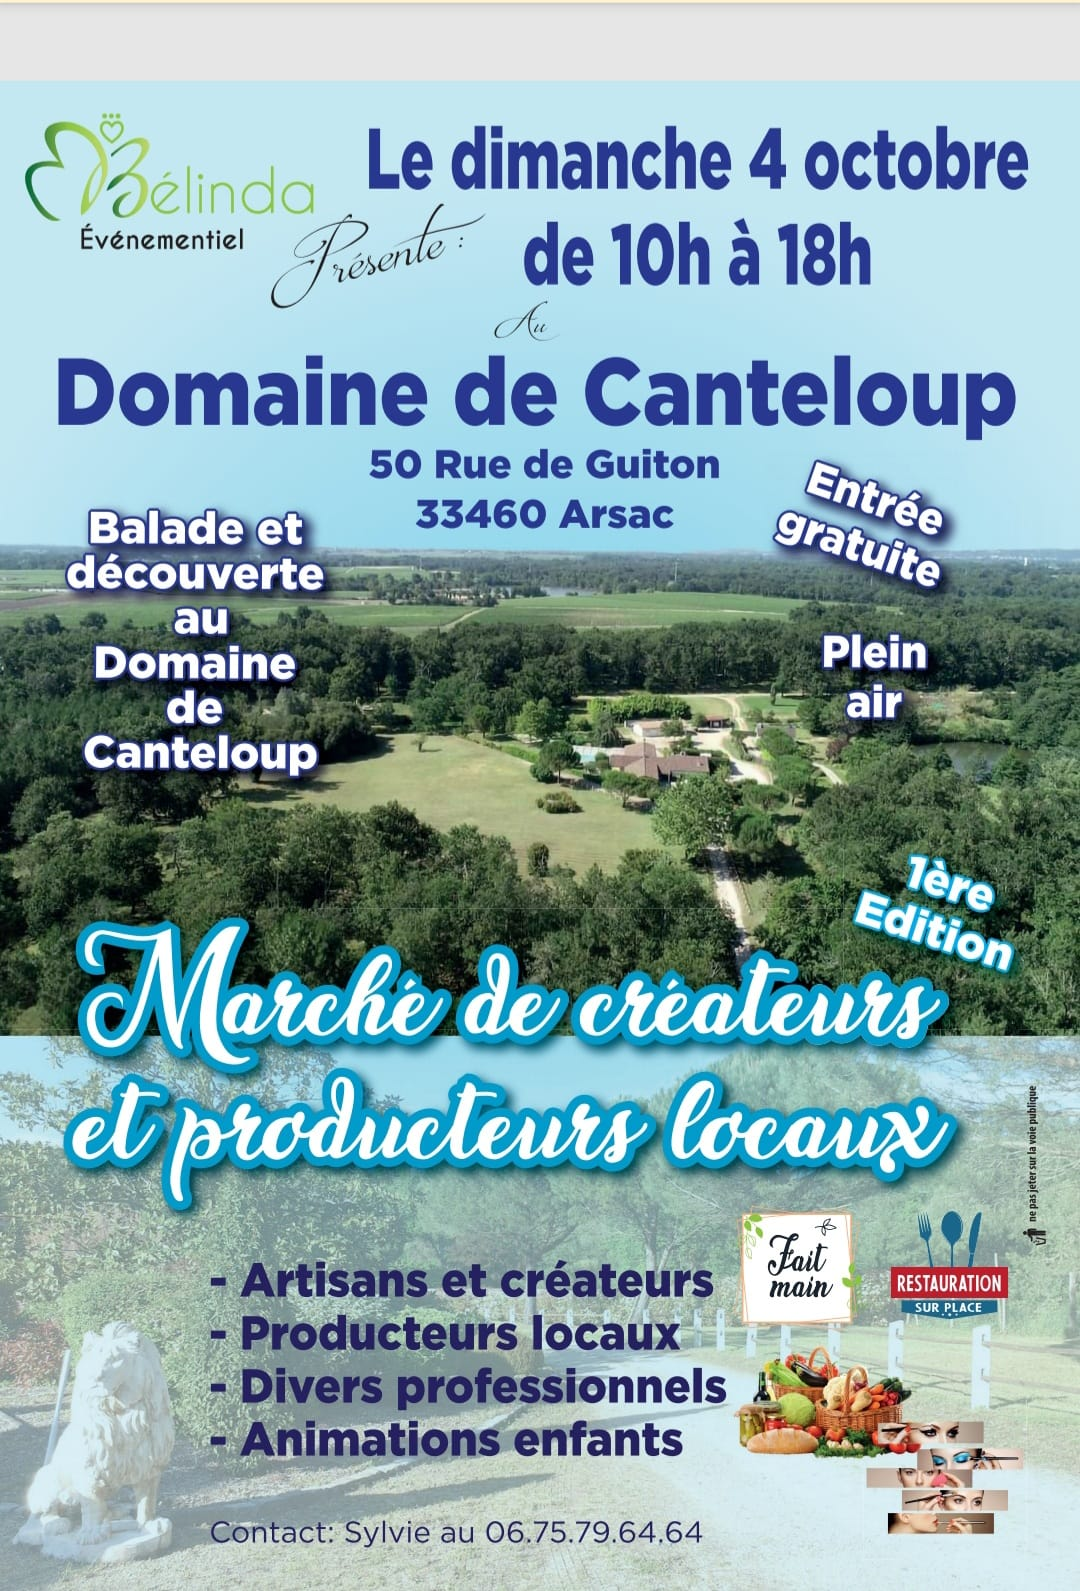 https://the-place-to-be.fr/wp-content/uploads/2020/09/domaine-canteloup-arsac-2020.jpg